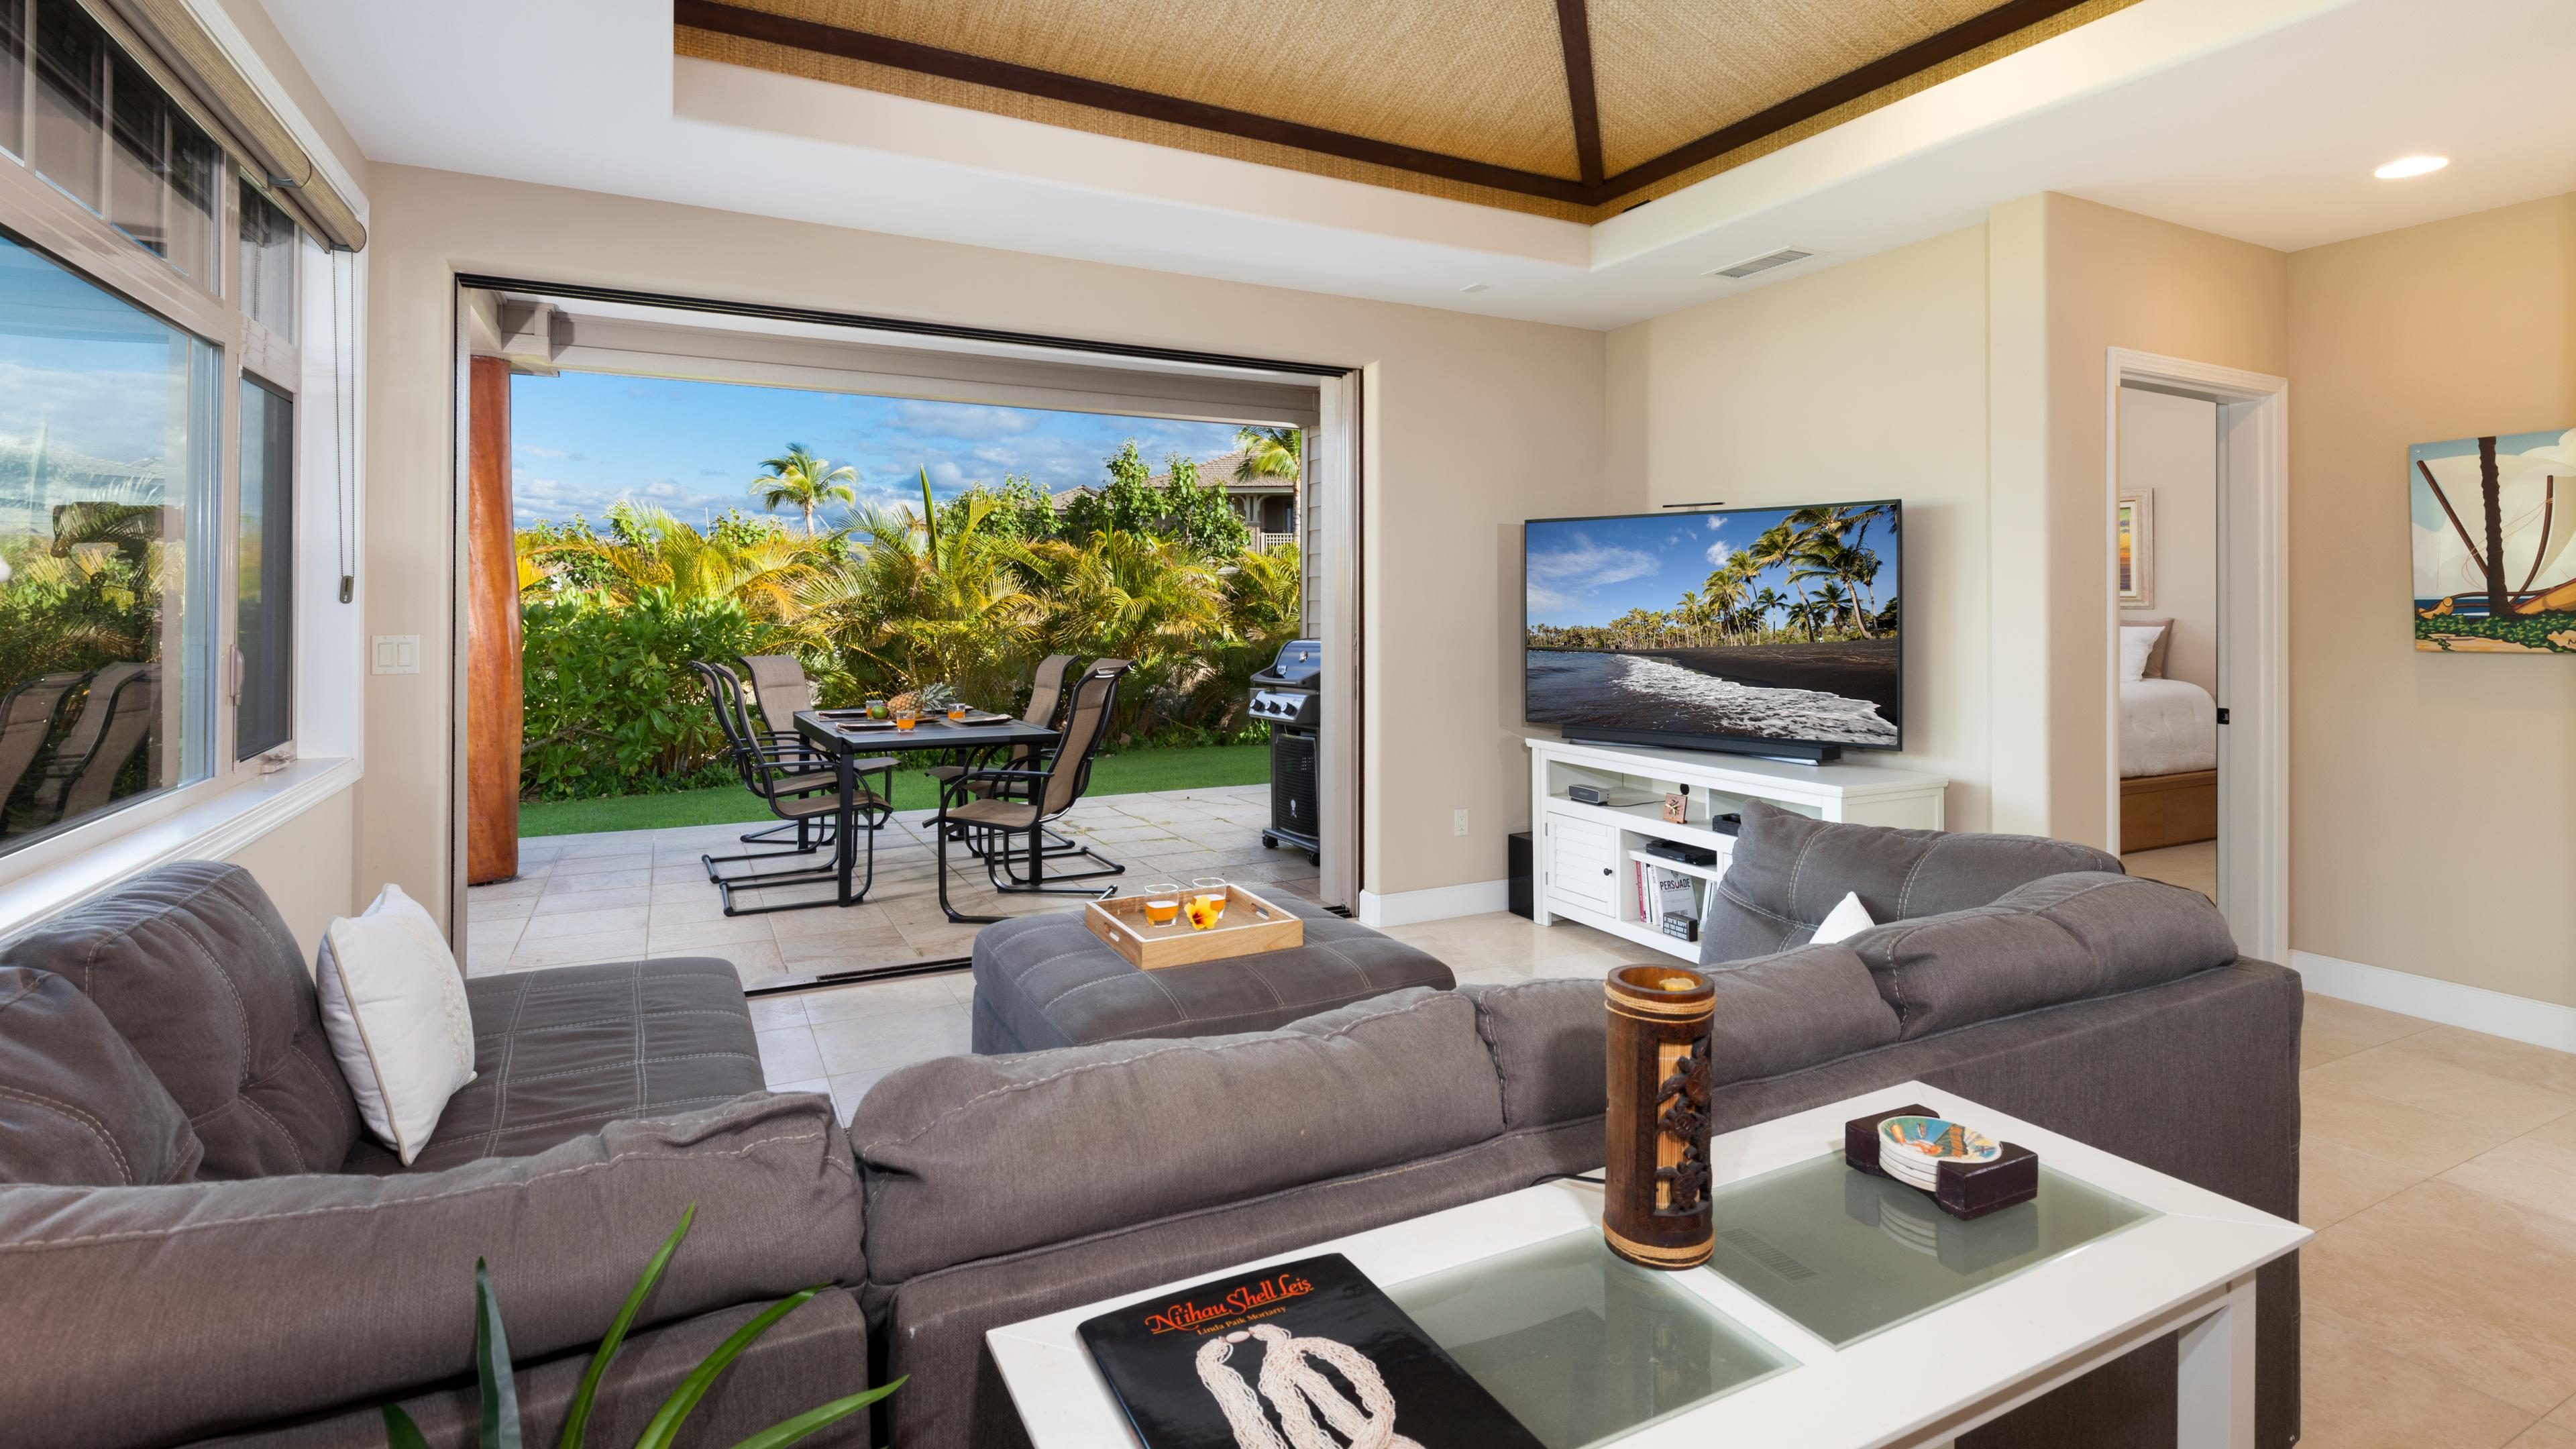 Pocket door lead from open concept living room to outdoors seamlessly